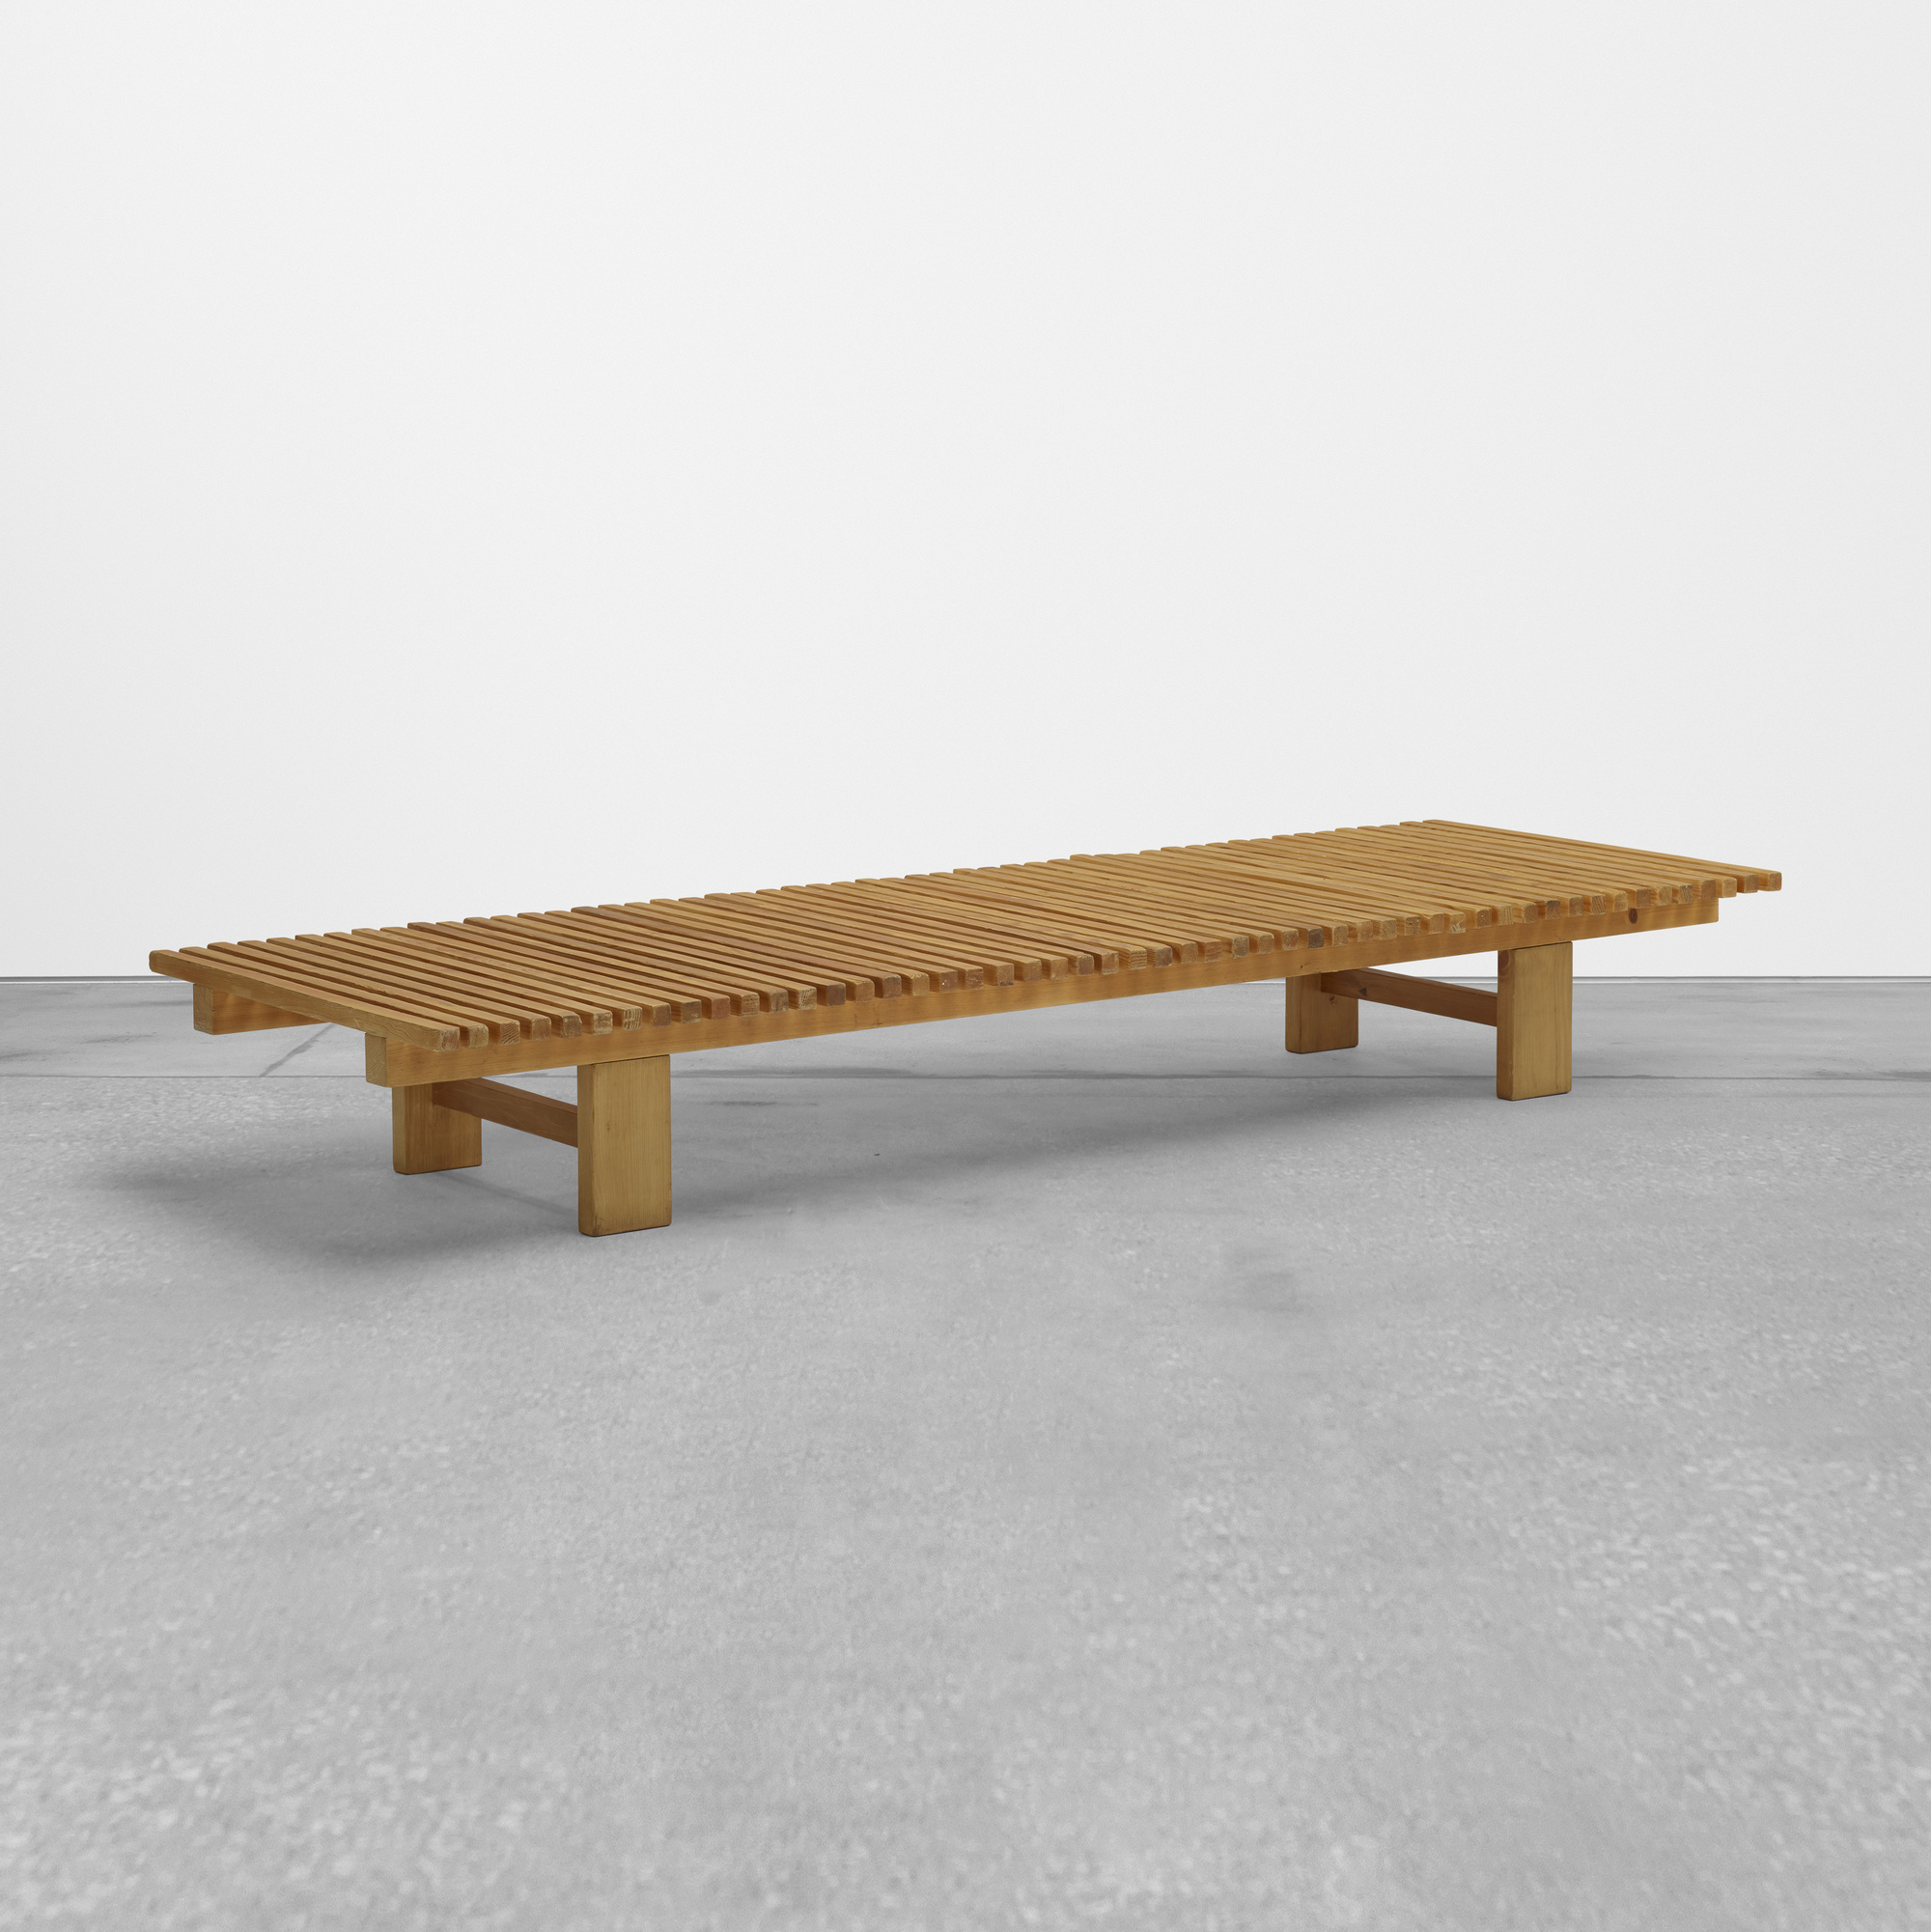 122: Charlotte Perriand / bench from Les Arcs, Savoie (1 of 4)